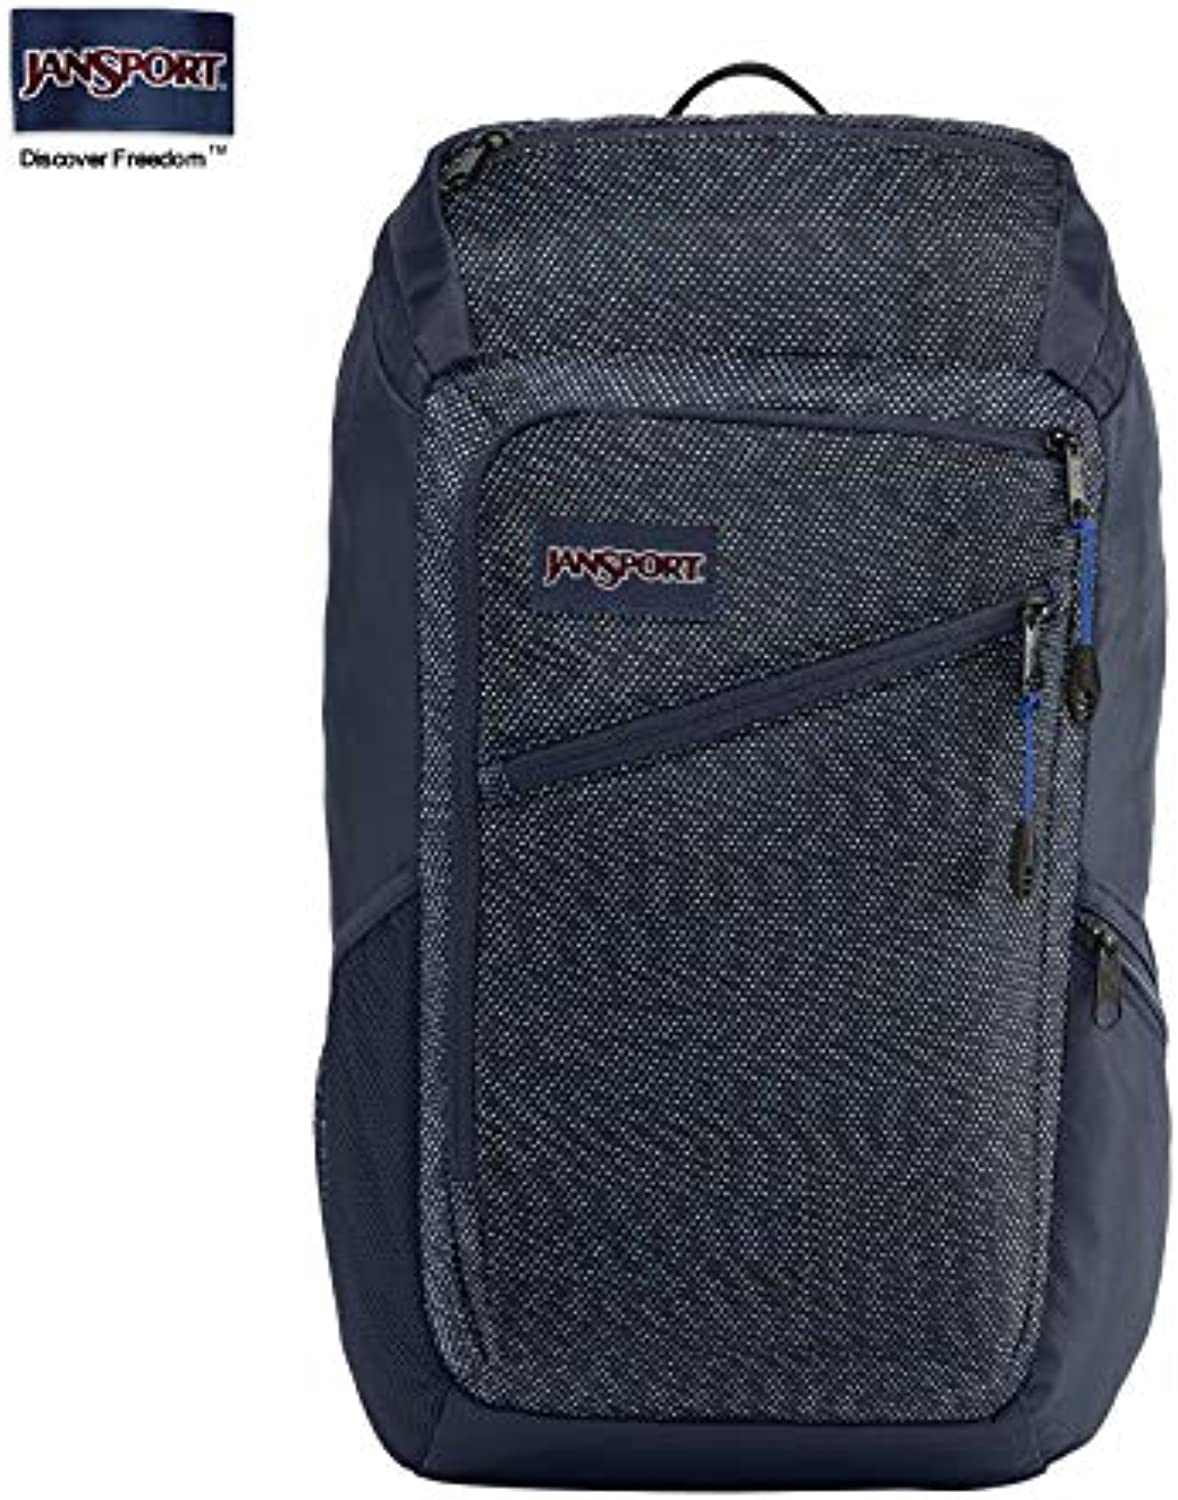 JanSport Jasper Flagship Store Outdoor Functional Compartment Men and Women Backpack 3C2W Collection